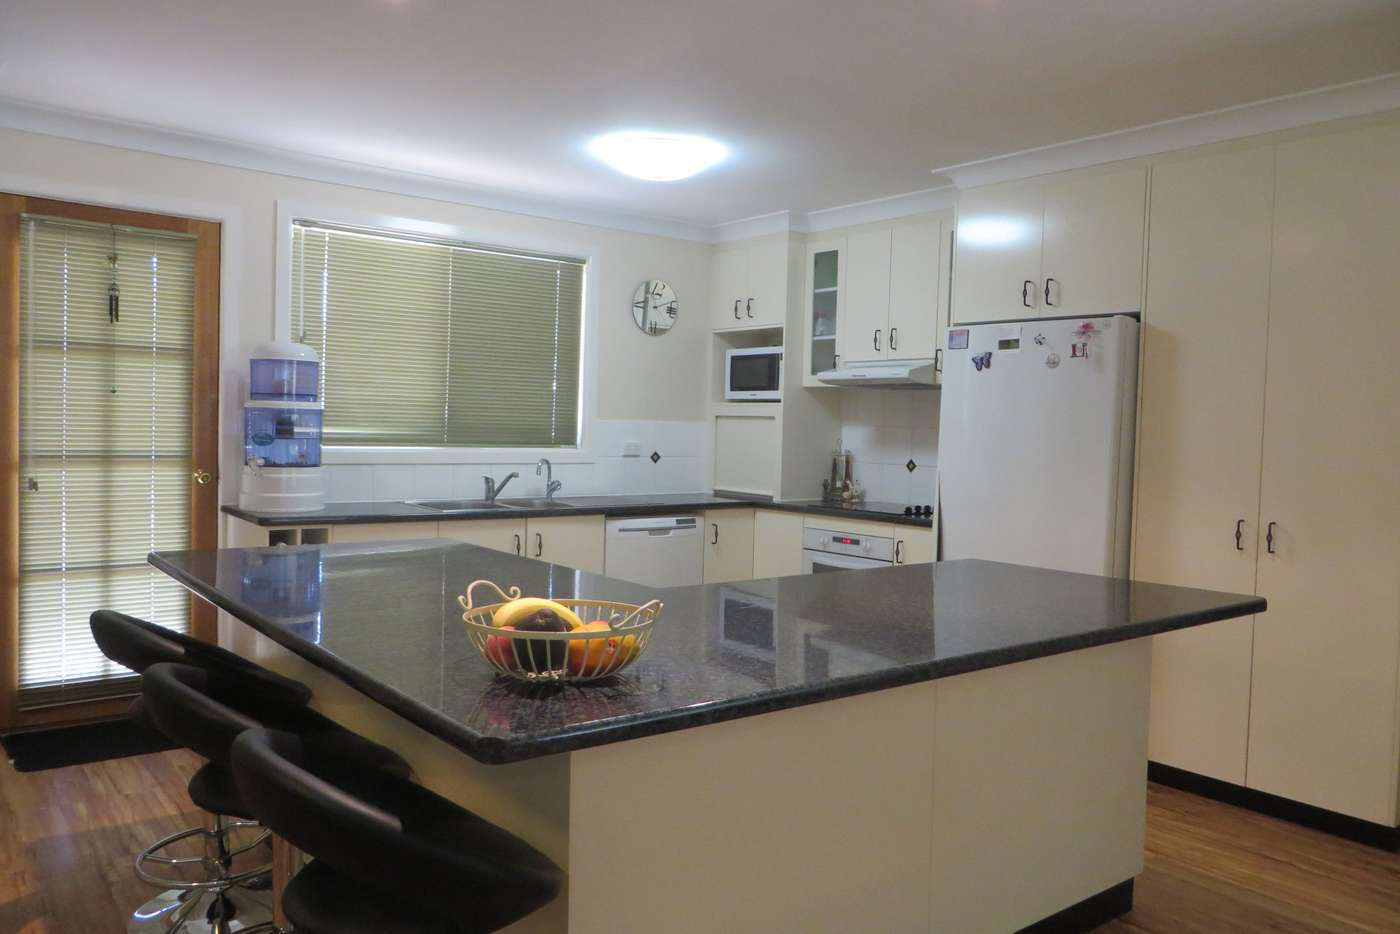 Main view of Homely house listing, 9 Elmer Street, Roma QLD 4455